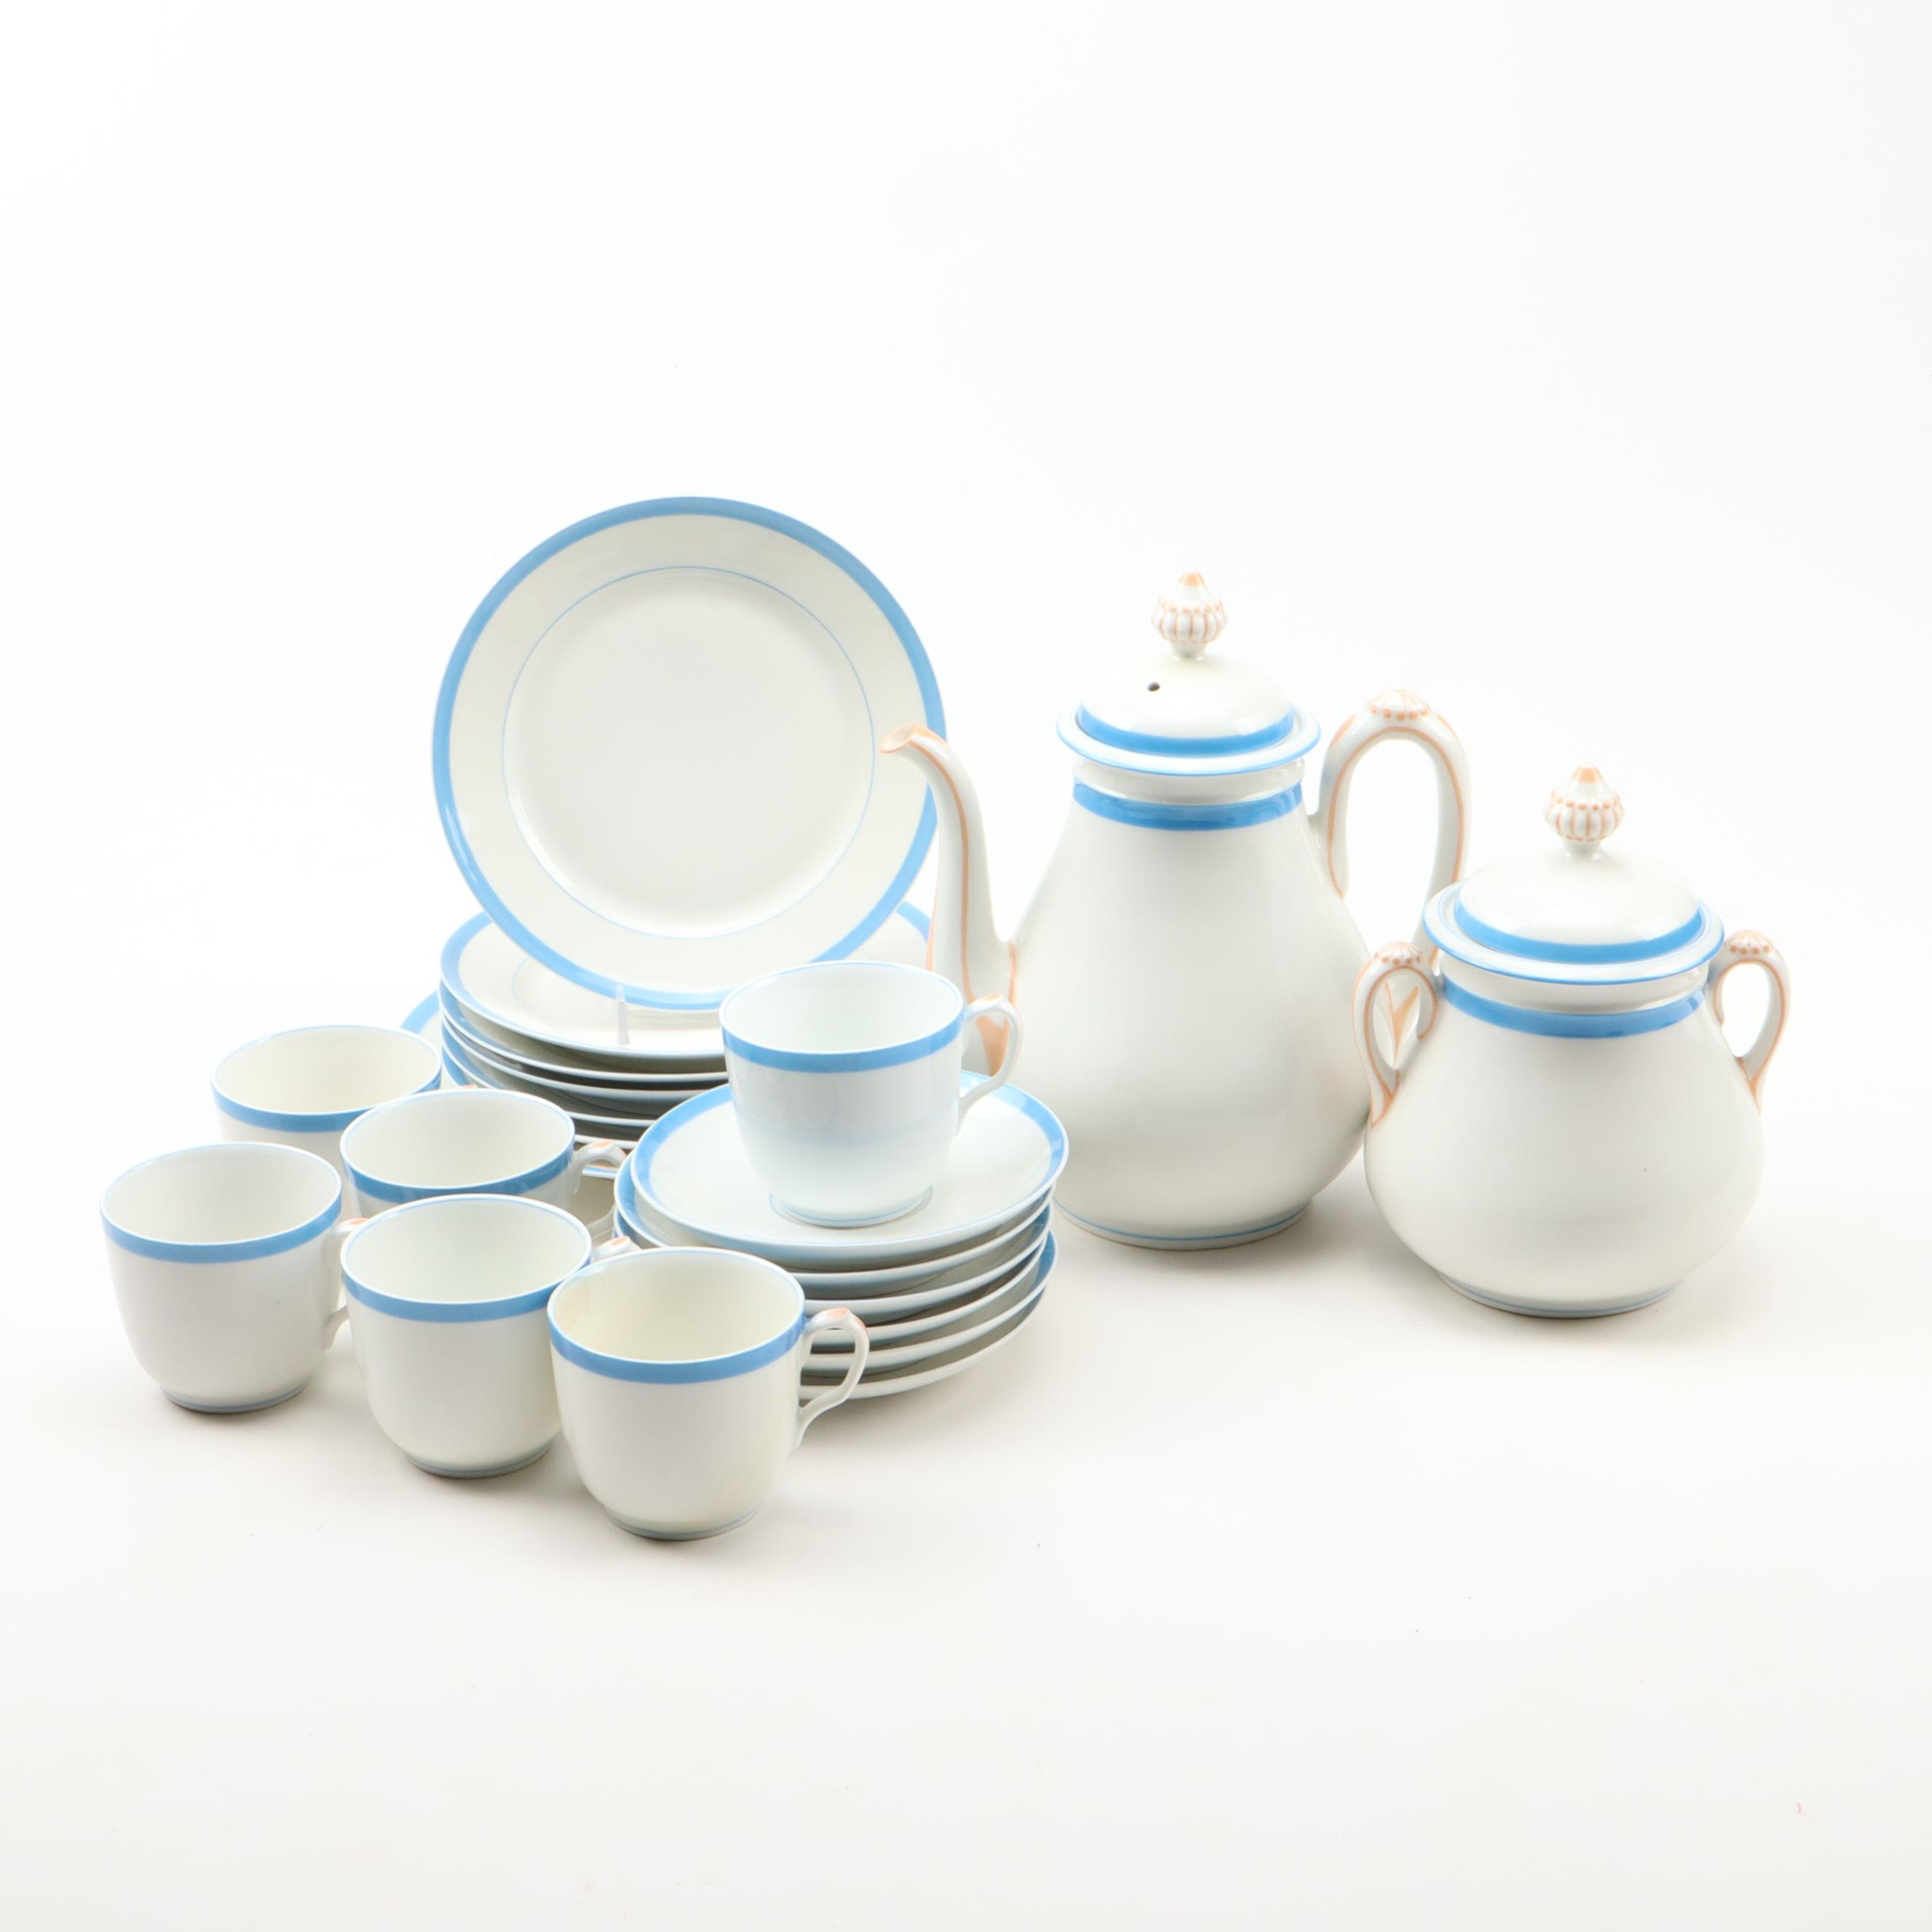 Haviland China Dinnerware and Serveware